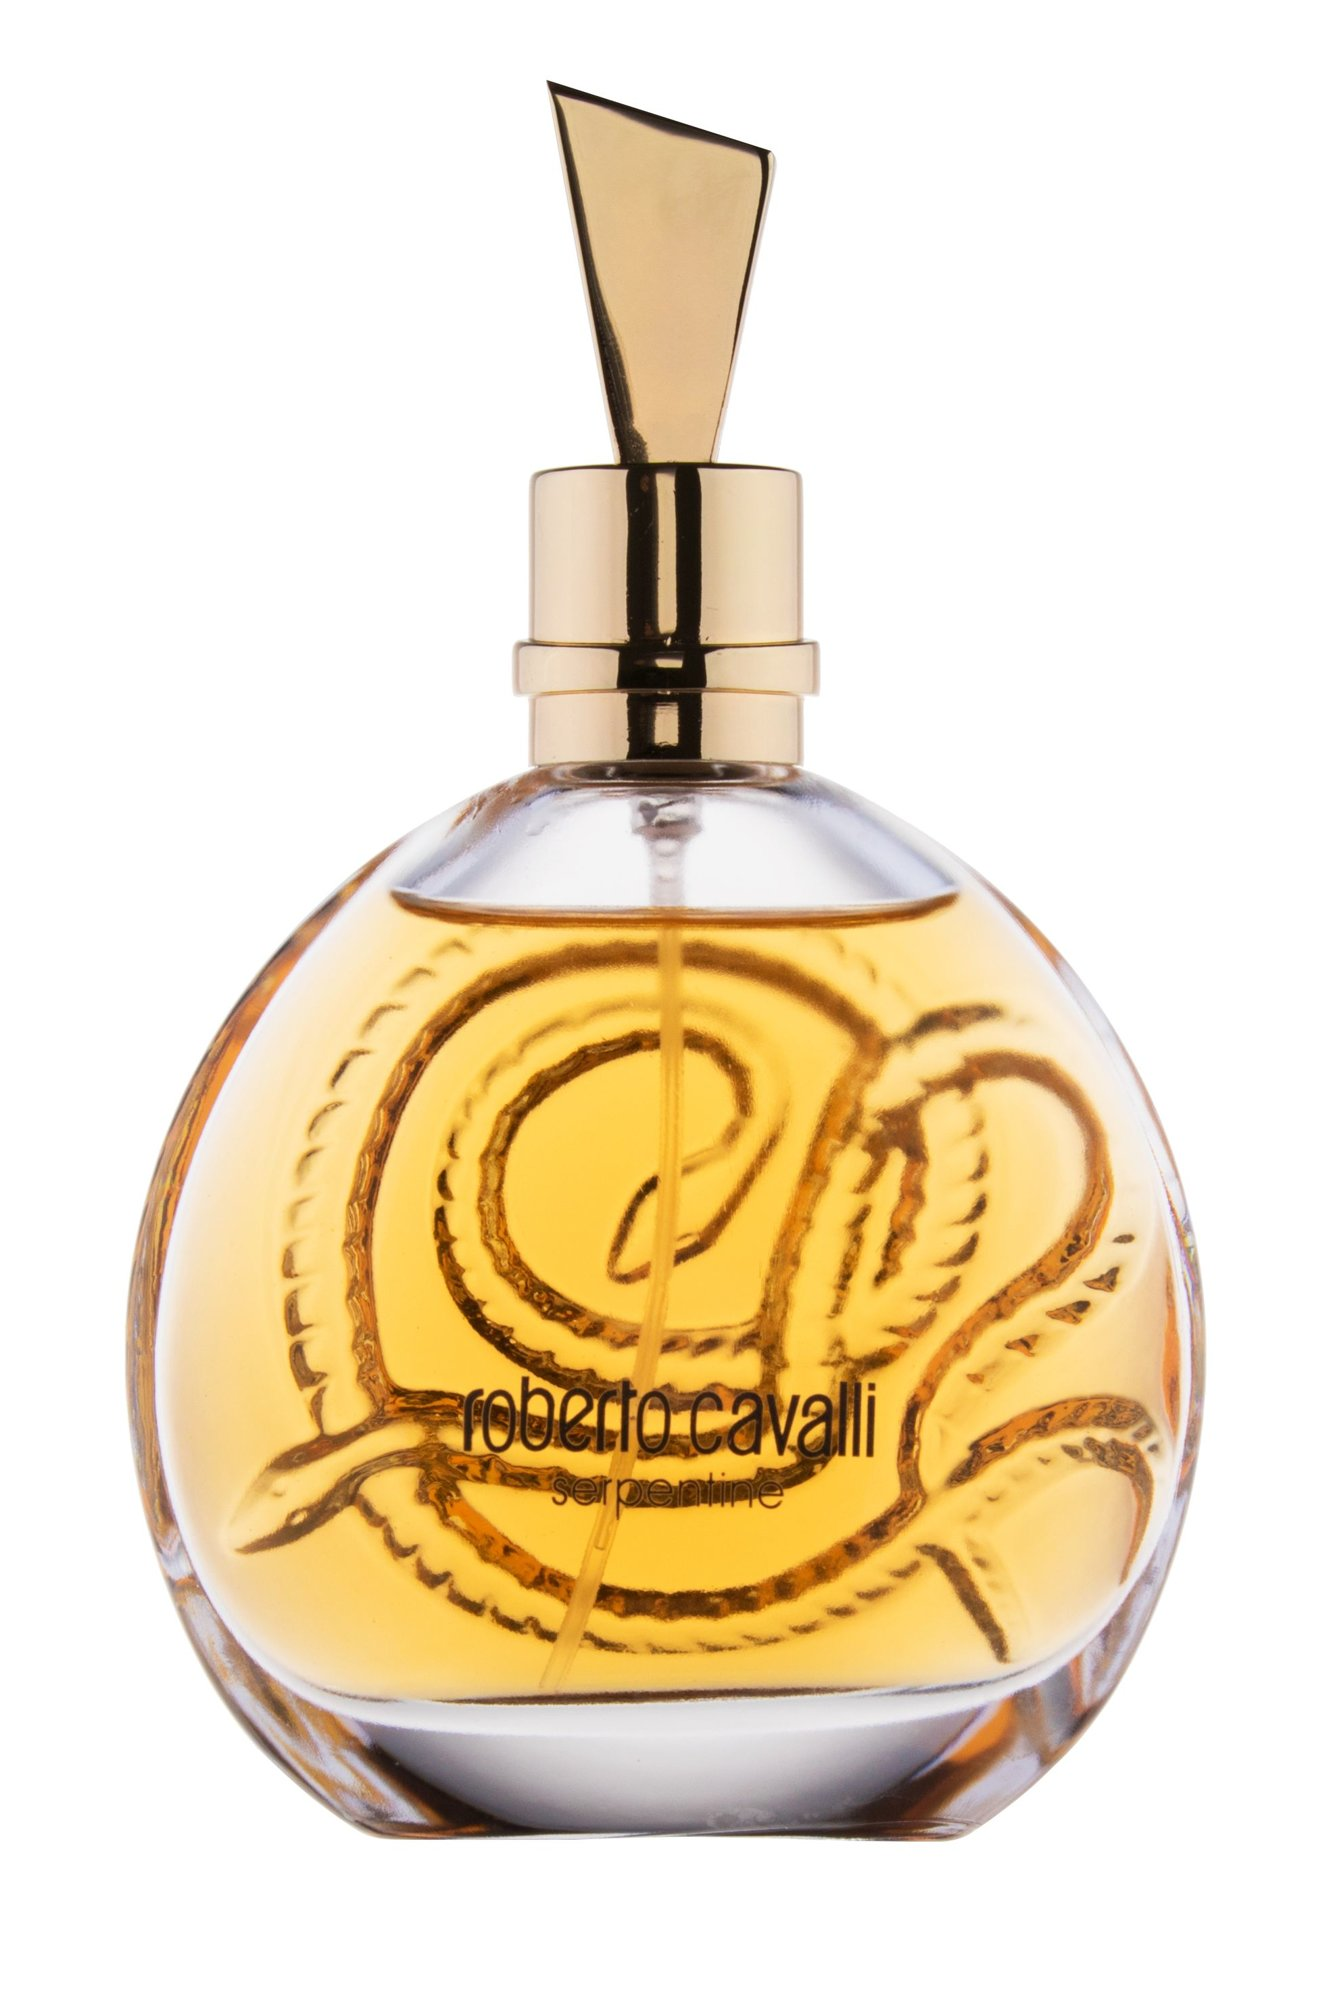 Roberto Cavalli Serpentine, Parfumovaná voda 90ml - Tester